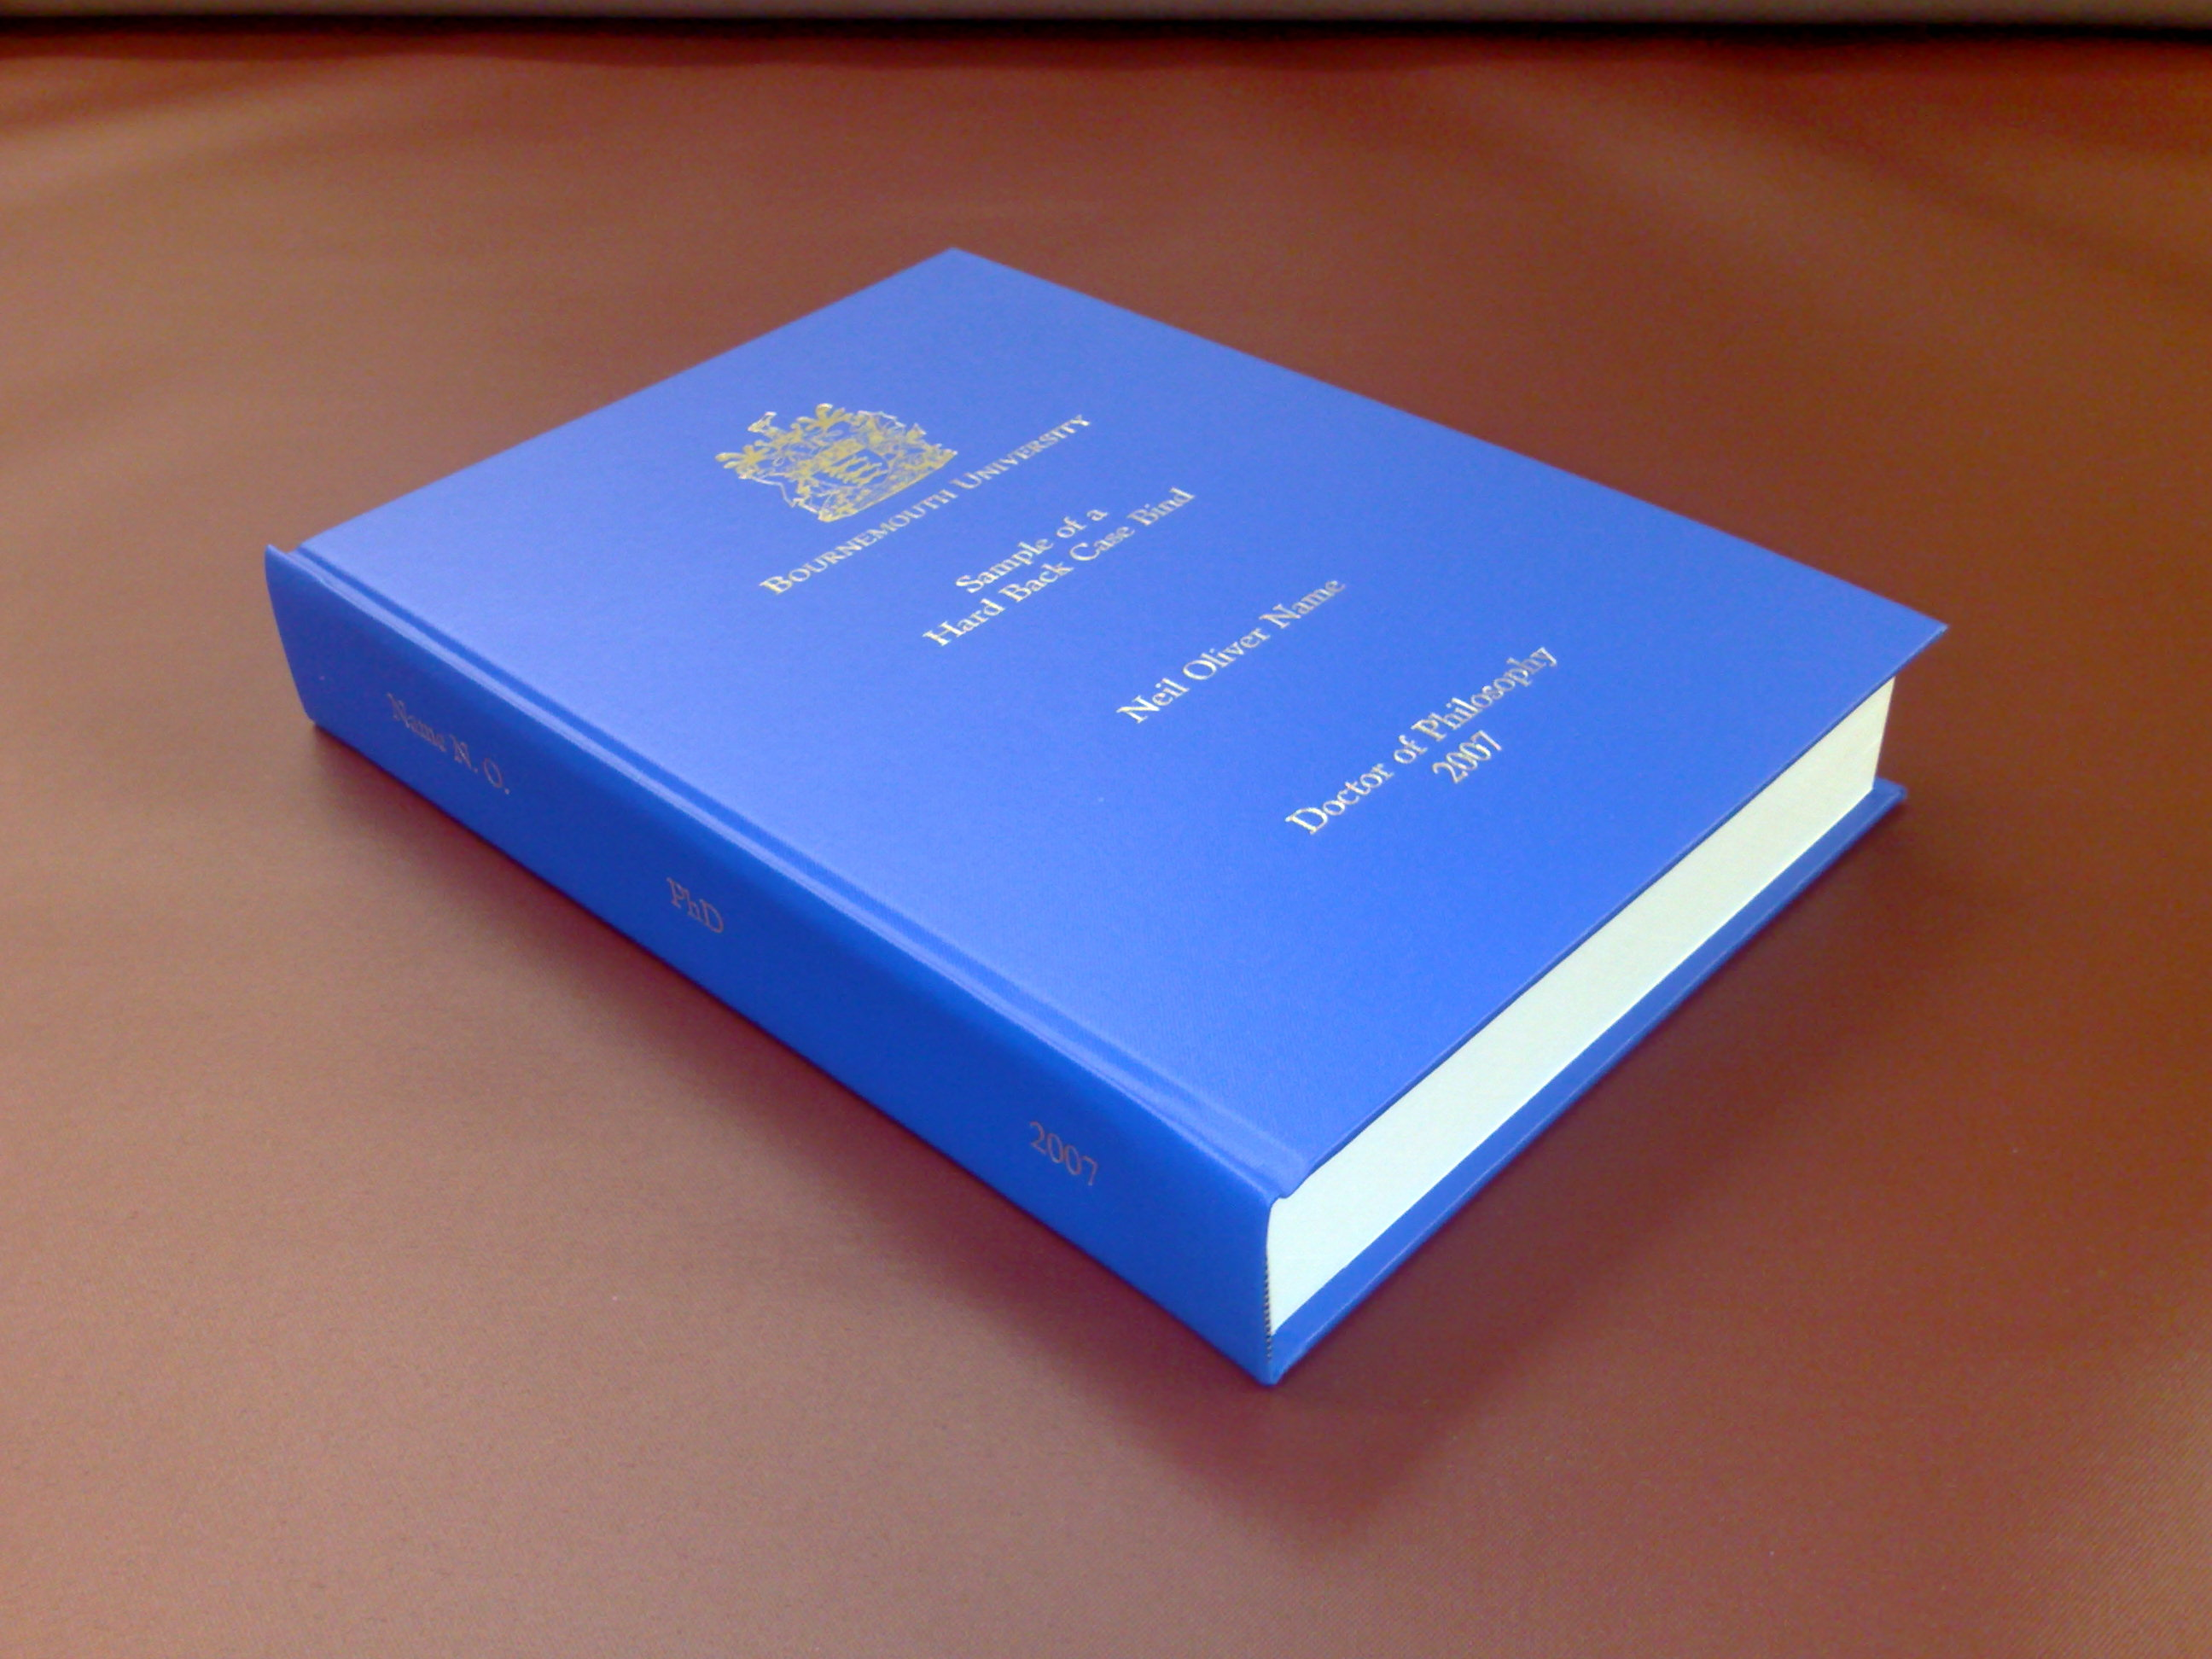 thesis binding online australia My thesis statement geek - 24/7 online custom thesis statement - 4,562 completed orders today for sunshine coast region, australia, pride and prejudice thesis.